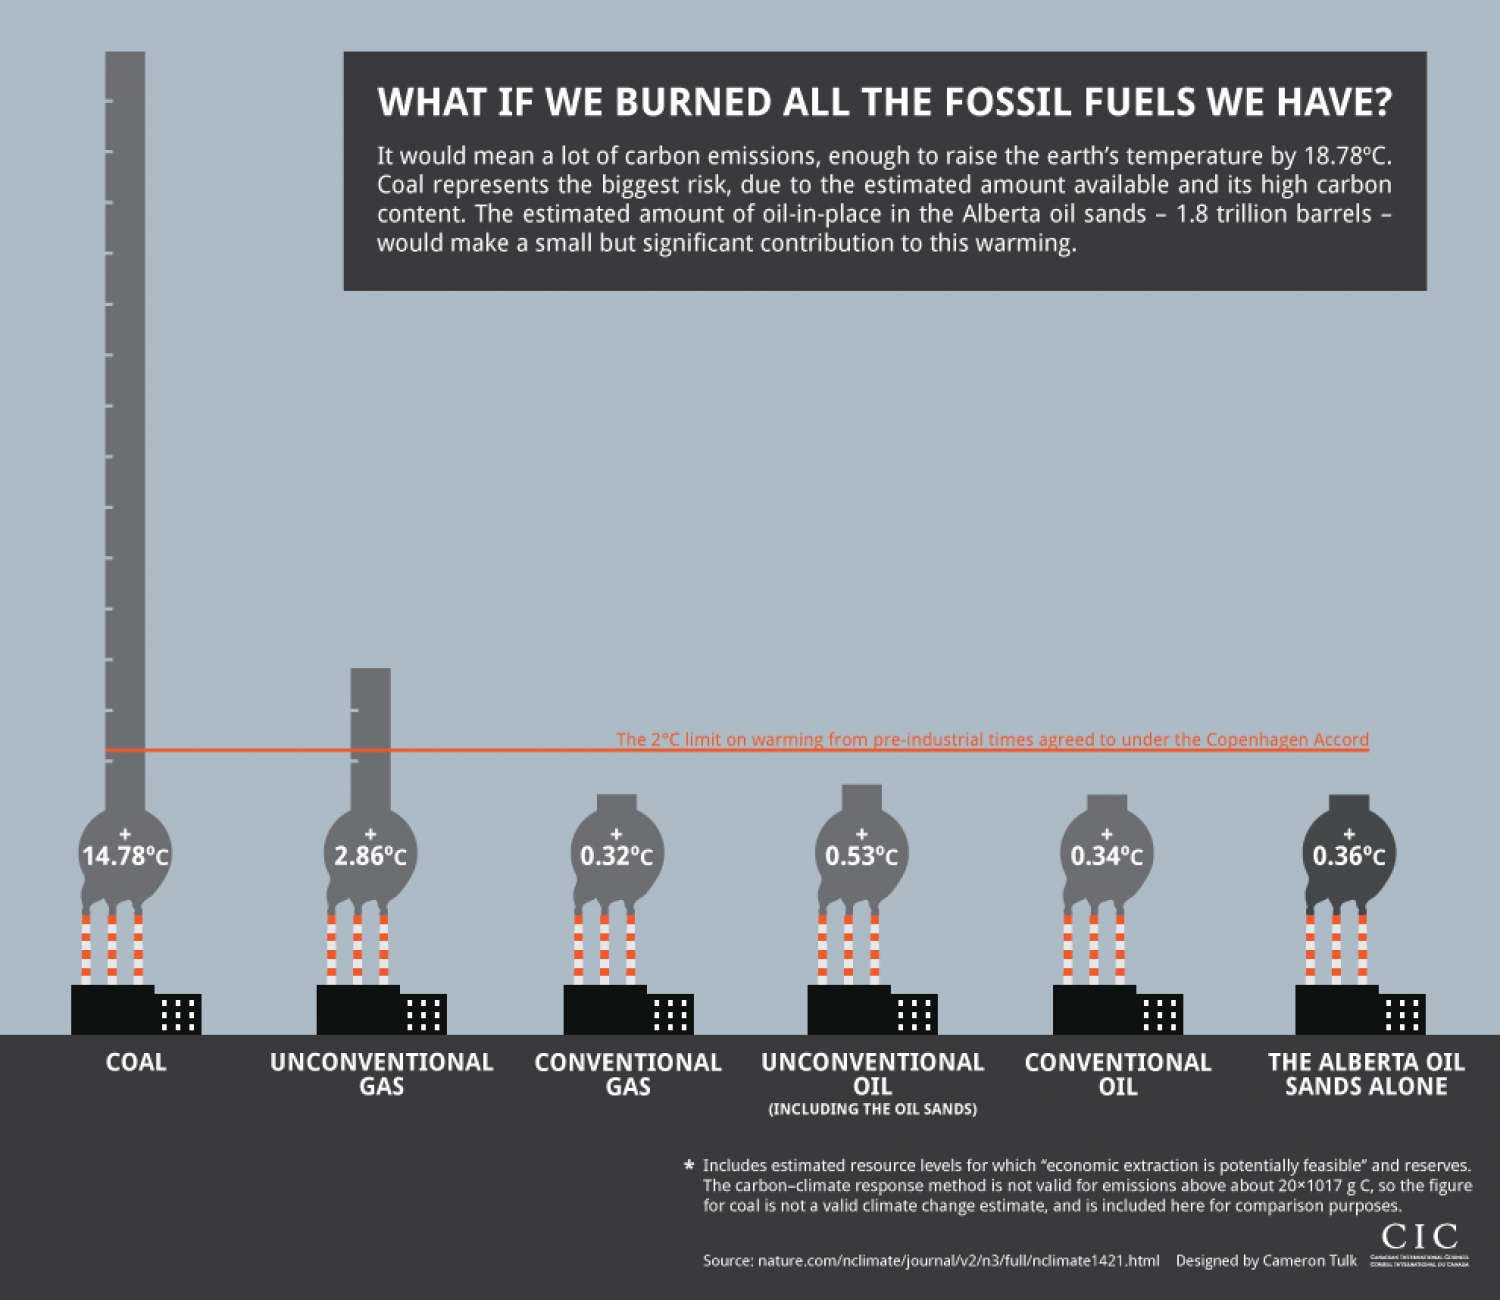 the immerse comparison on the fossil fuels in the united states The company is one of the largest theme park operators in the united states, is a major manufacturer of aluminum cans,  operating solely independent of fossil fuels.